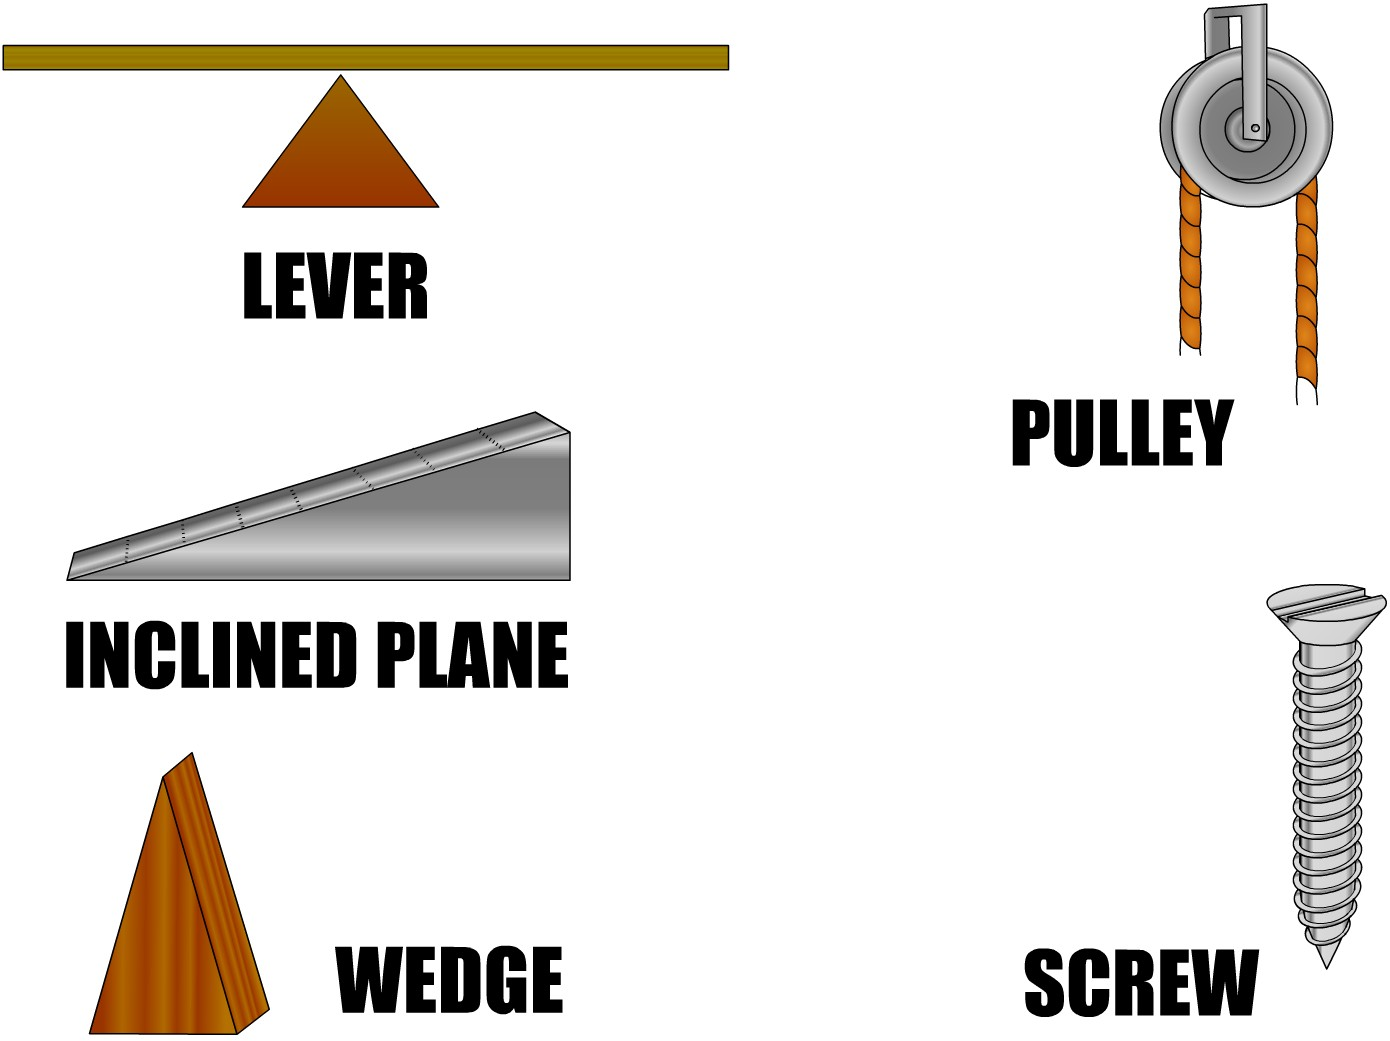 Lever And Pulley Clipart.